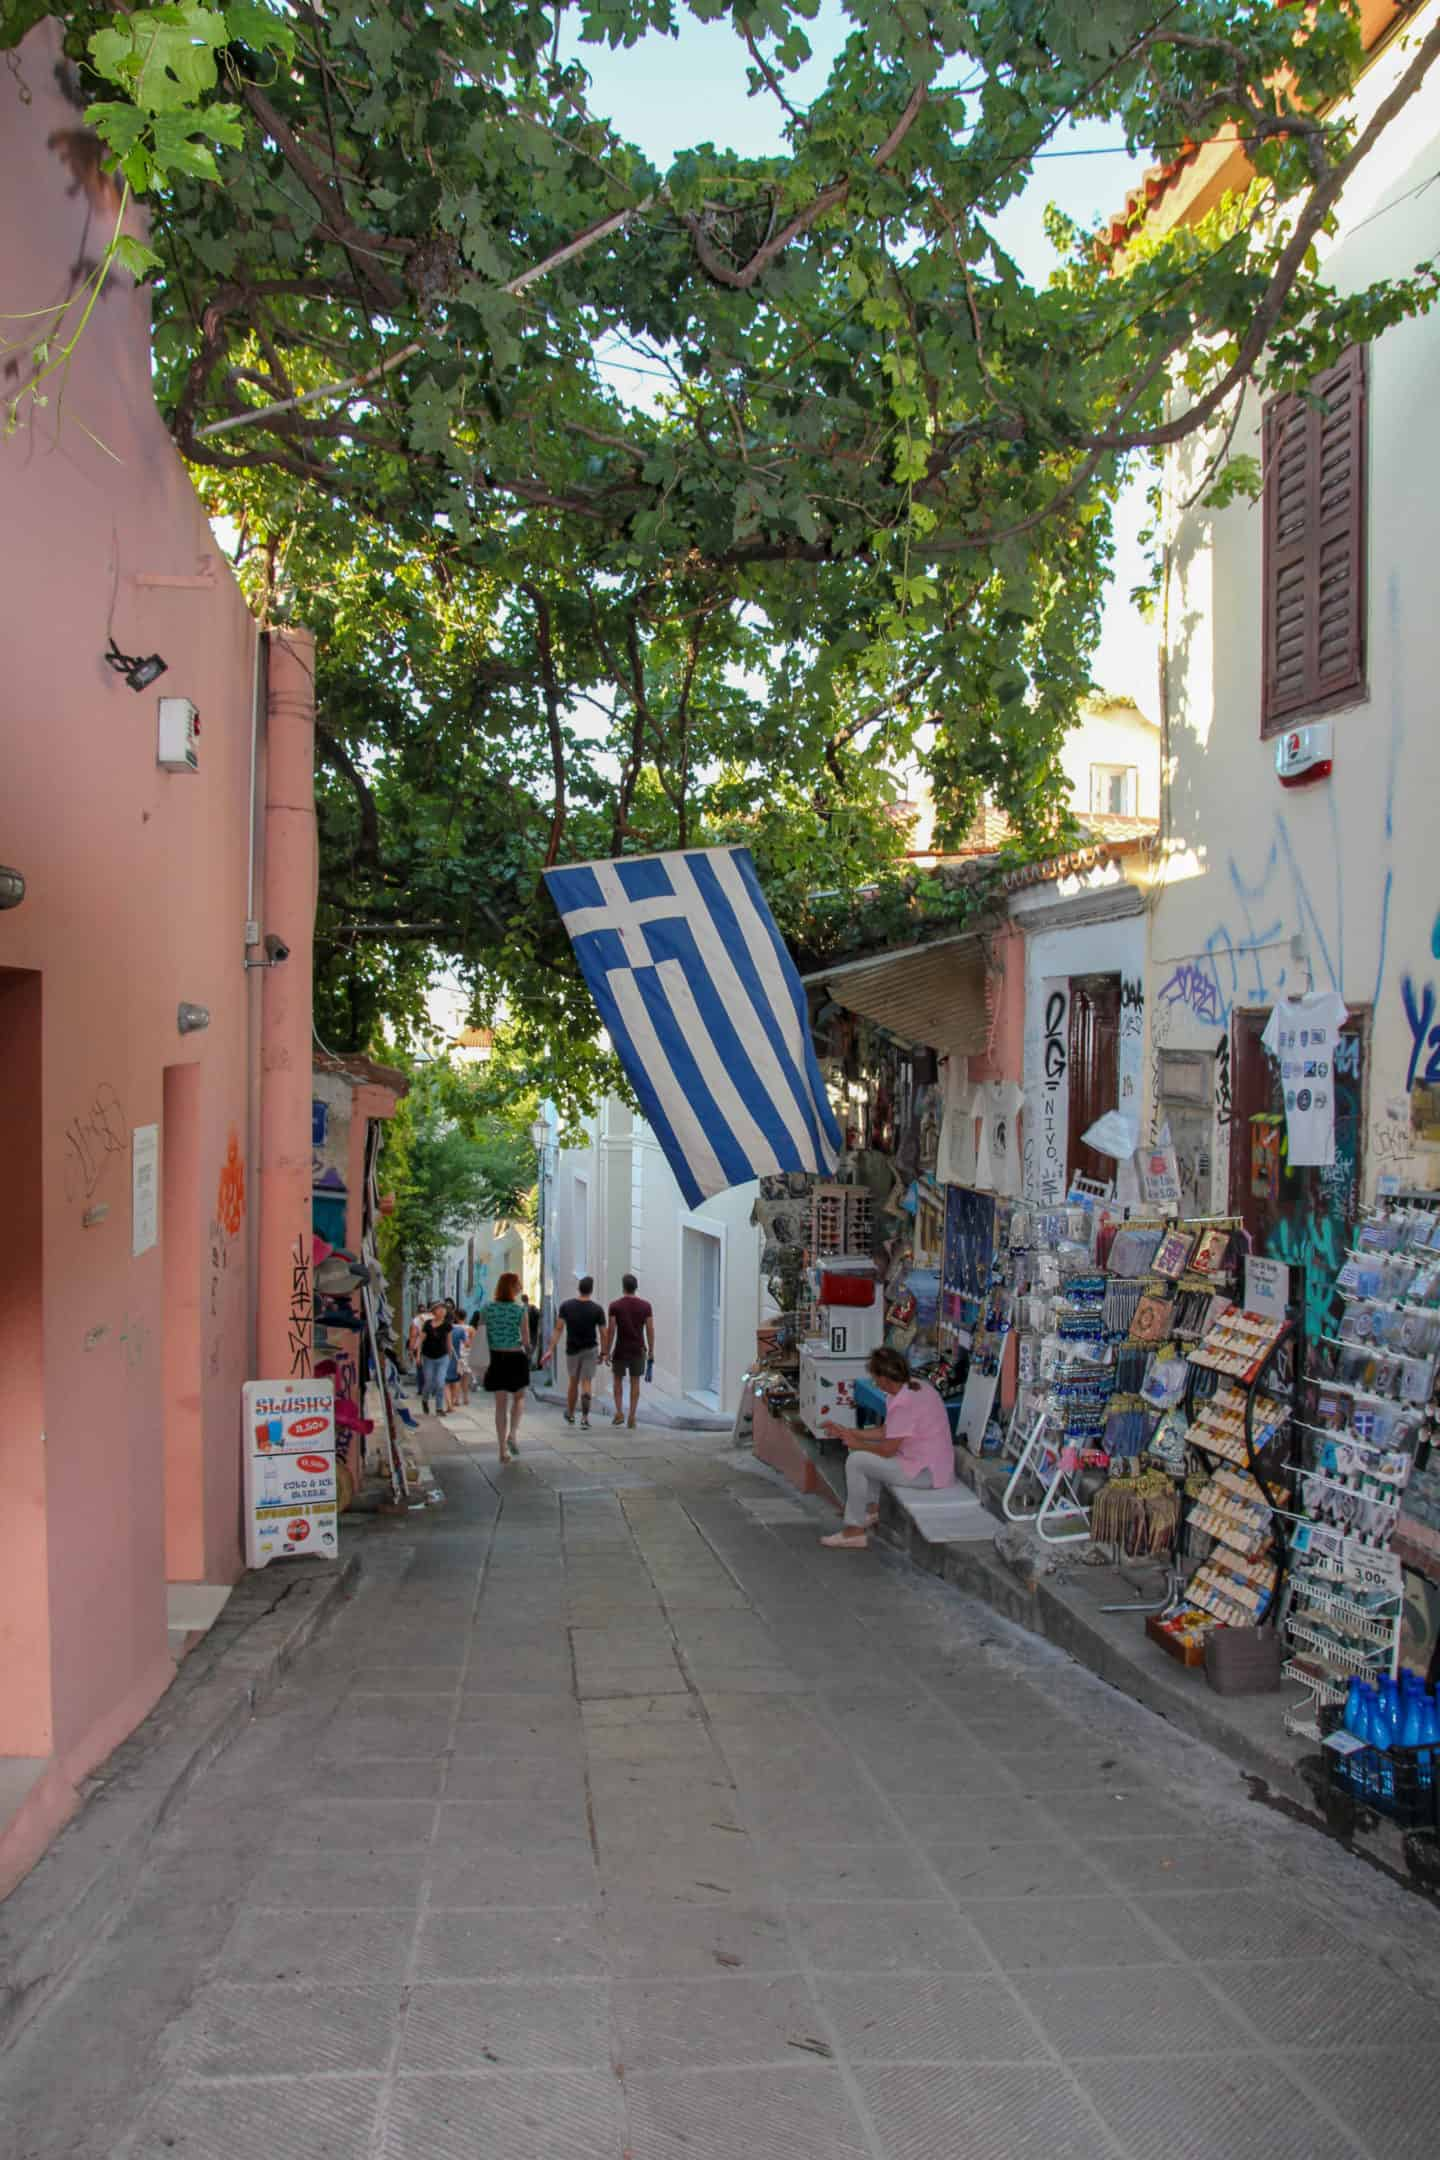 Exploring Plaka is one of the things to do during 2 days in Athens